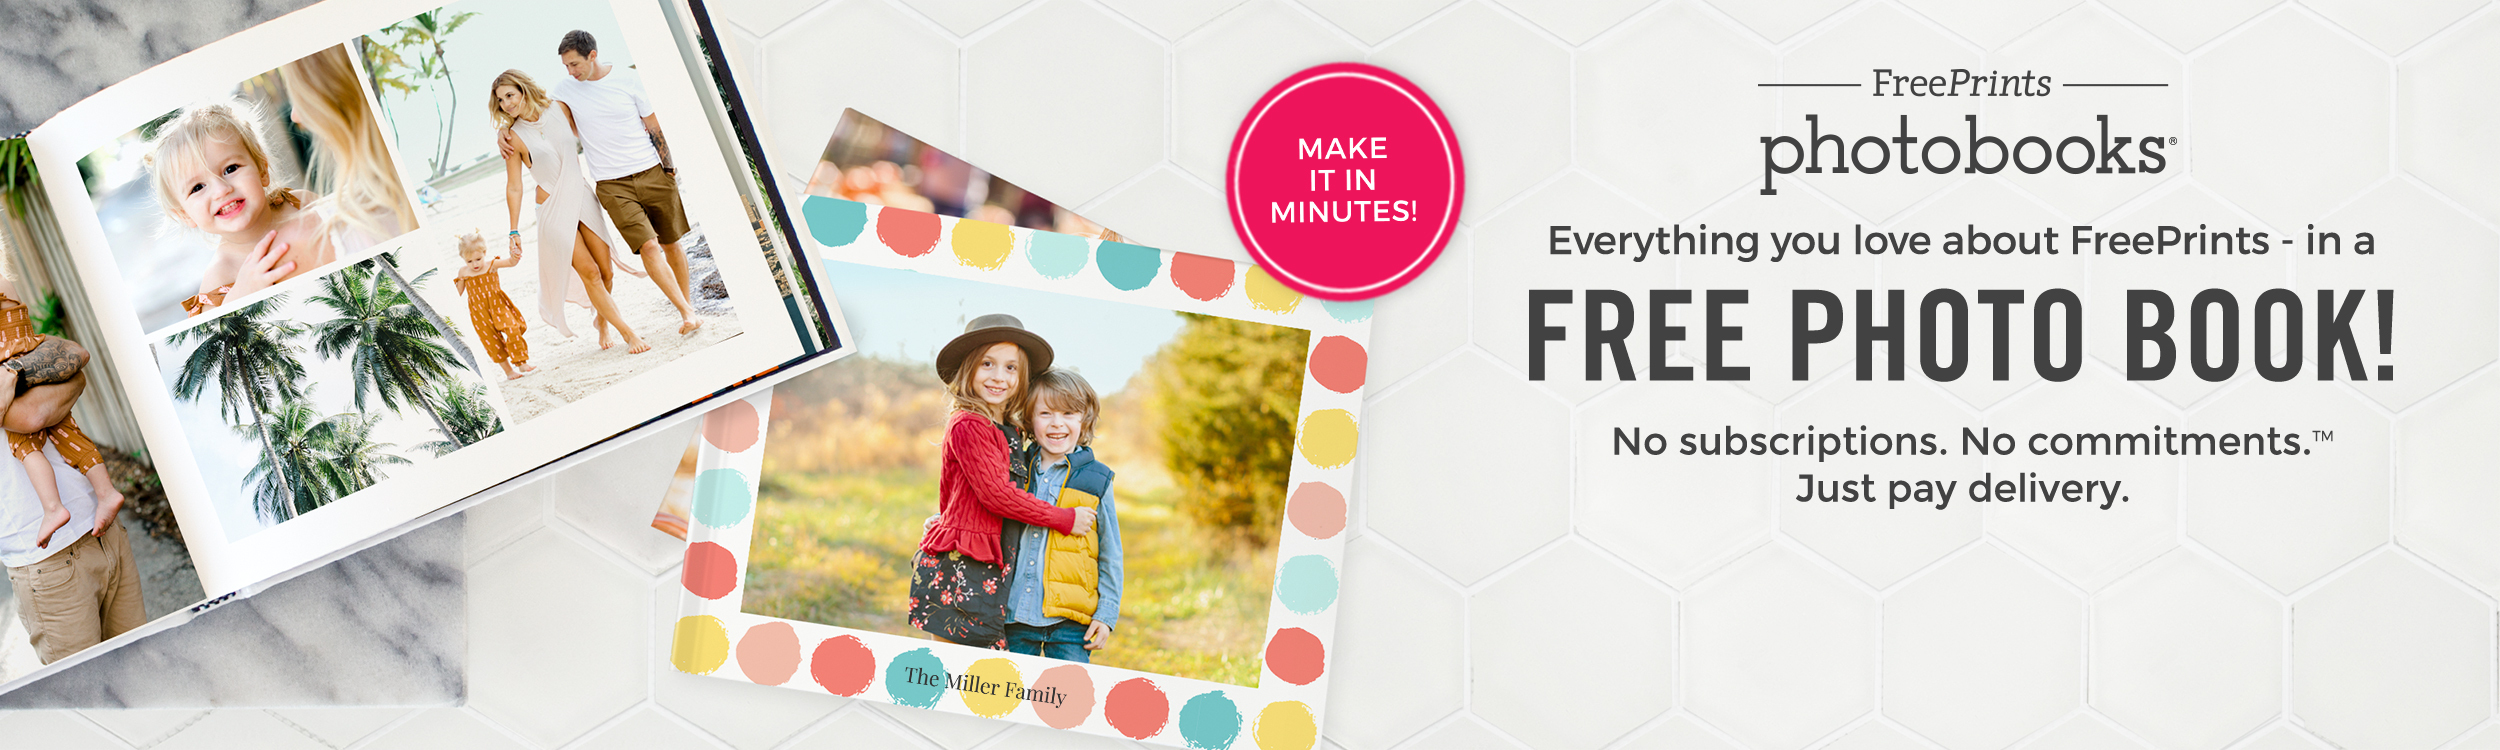 Everything you love about FreePrints in a FREE PHOTO BOOK!